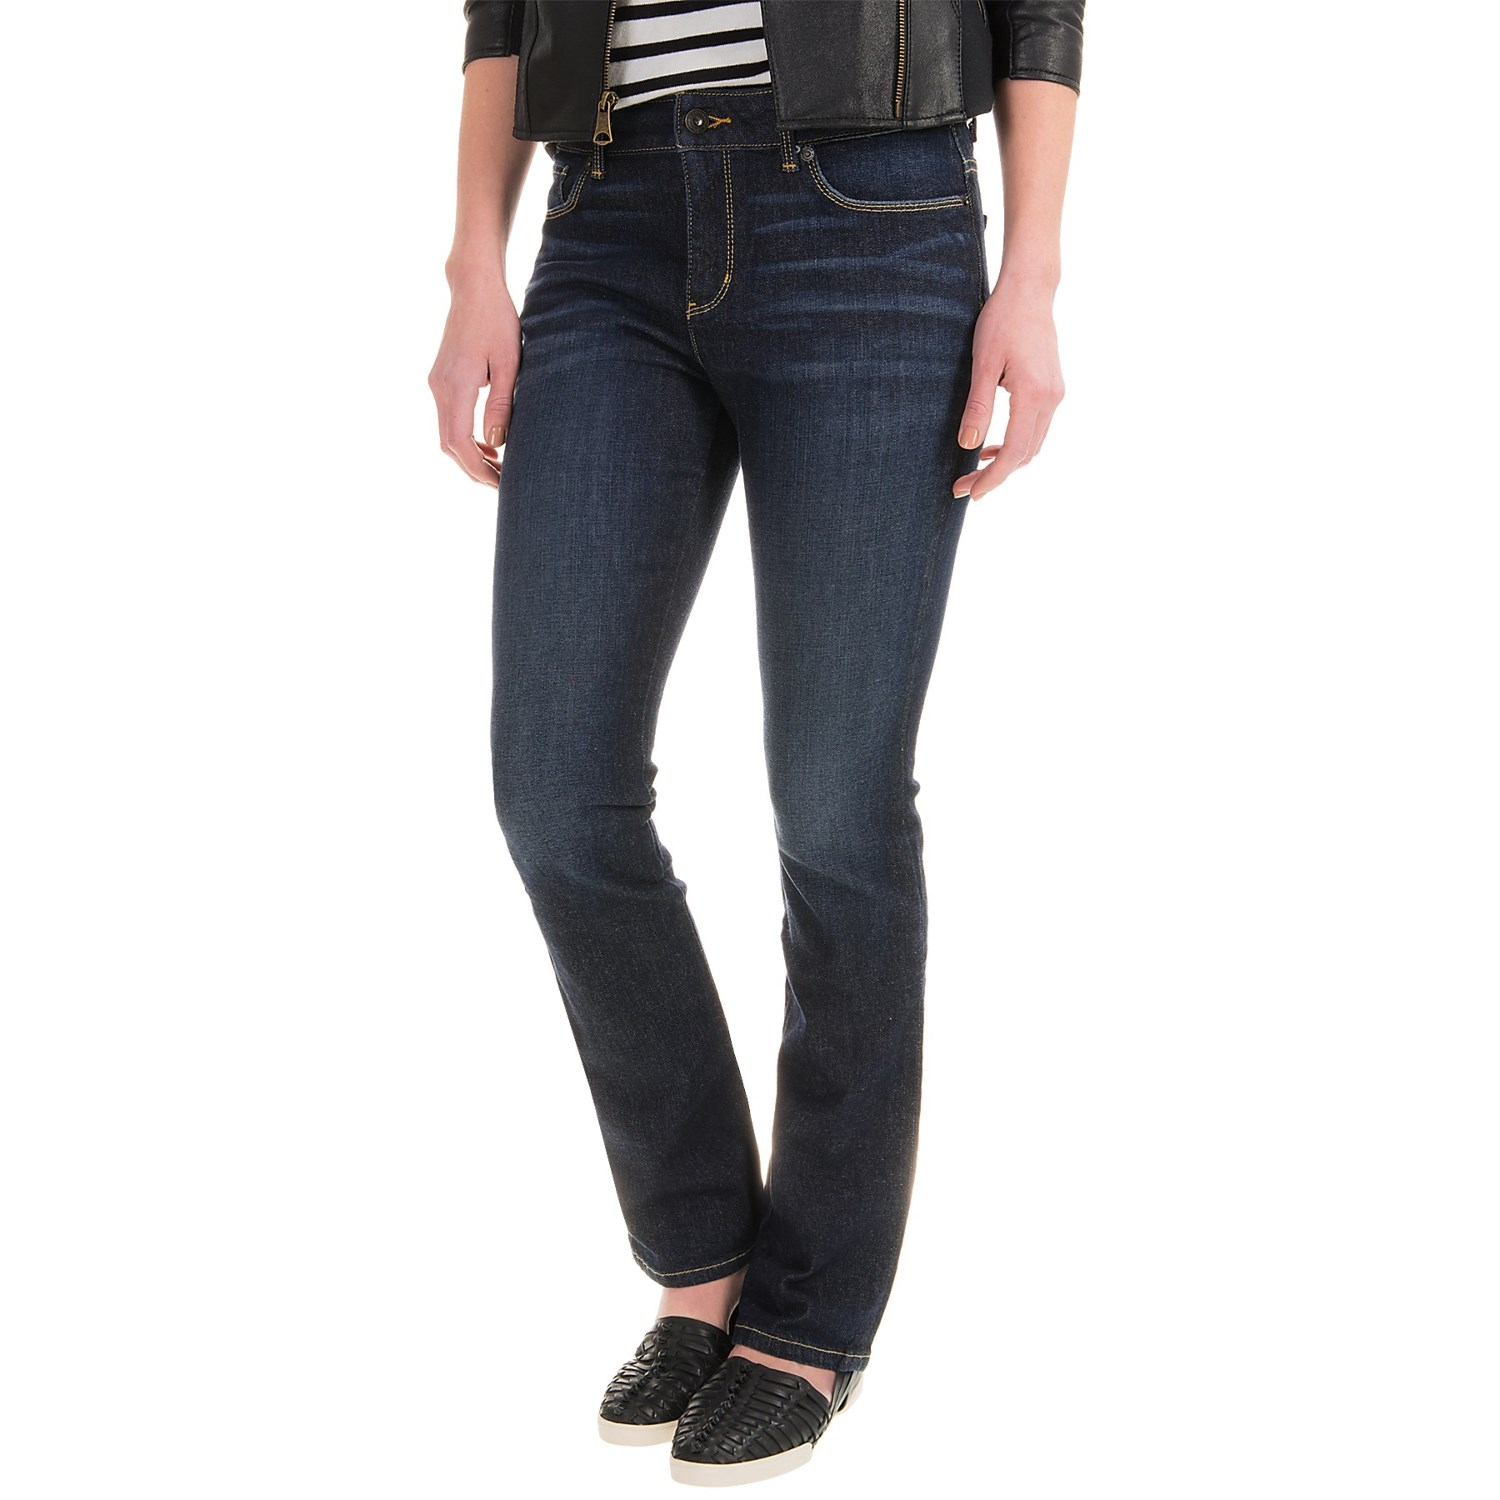 Women's Skinny Stretch Knit Denim Jeans. from $ 25 99 Prime. 4 out of 5 stars WallFlower. Women's Juniors Classic Legendary Stretch Bootcut Denim Jeans. from $ 14 99 Prime. out of 5 stars NYDJ. Women's Ami Skinny Jeans in Sure Stretch Denim. from $ 39 62 Prime. out of 5 stars Silver Jeans Co.